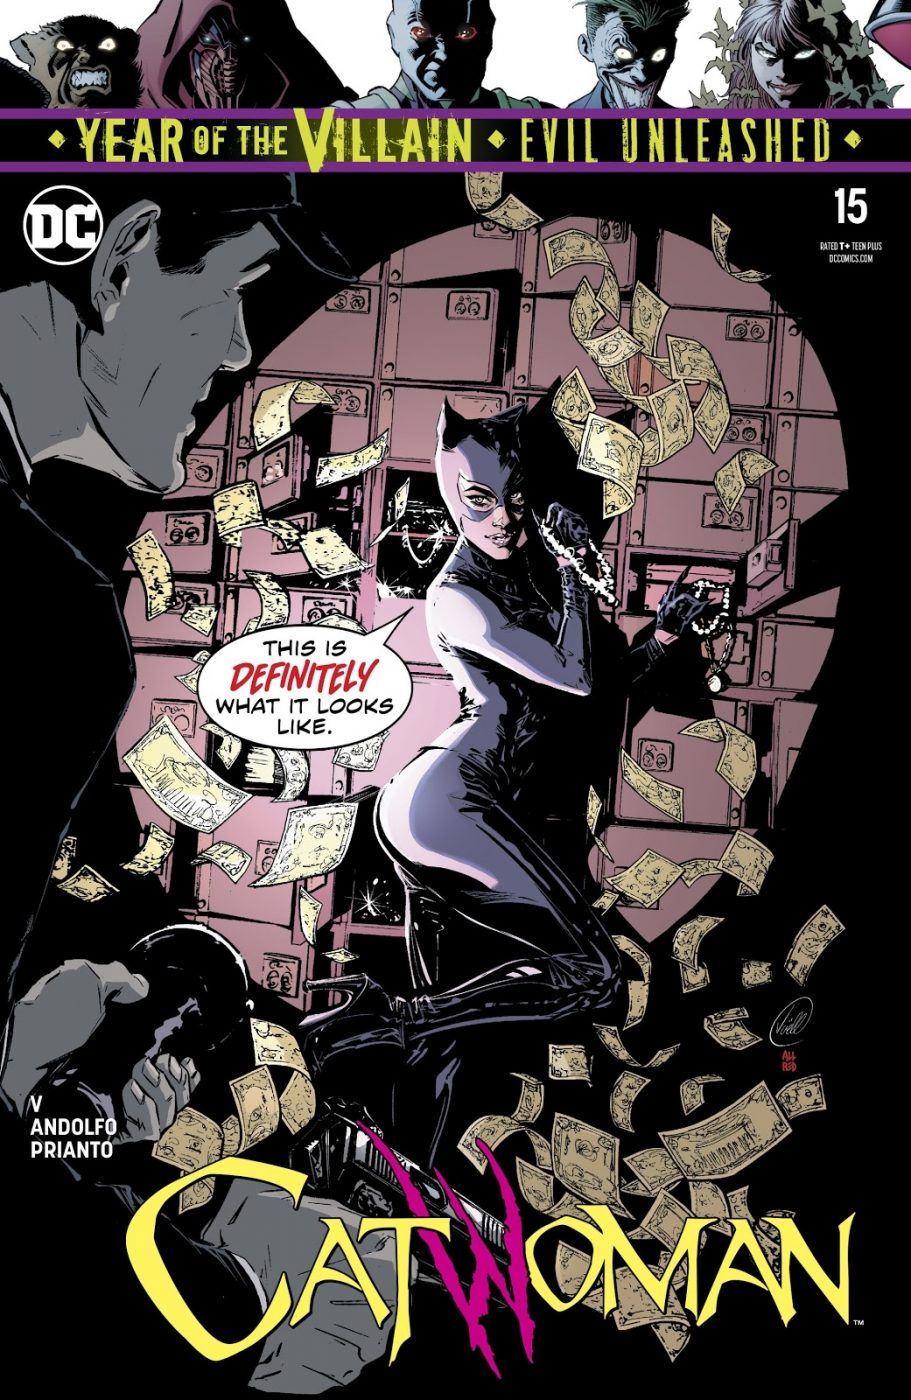 Catwoman #15